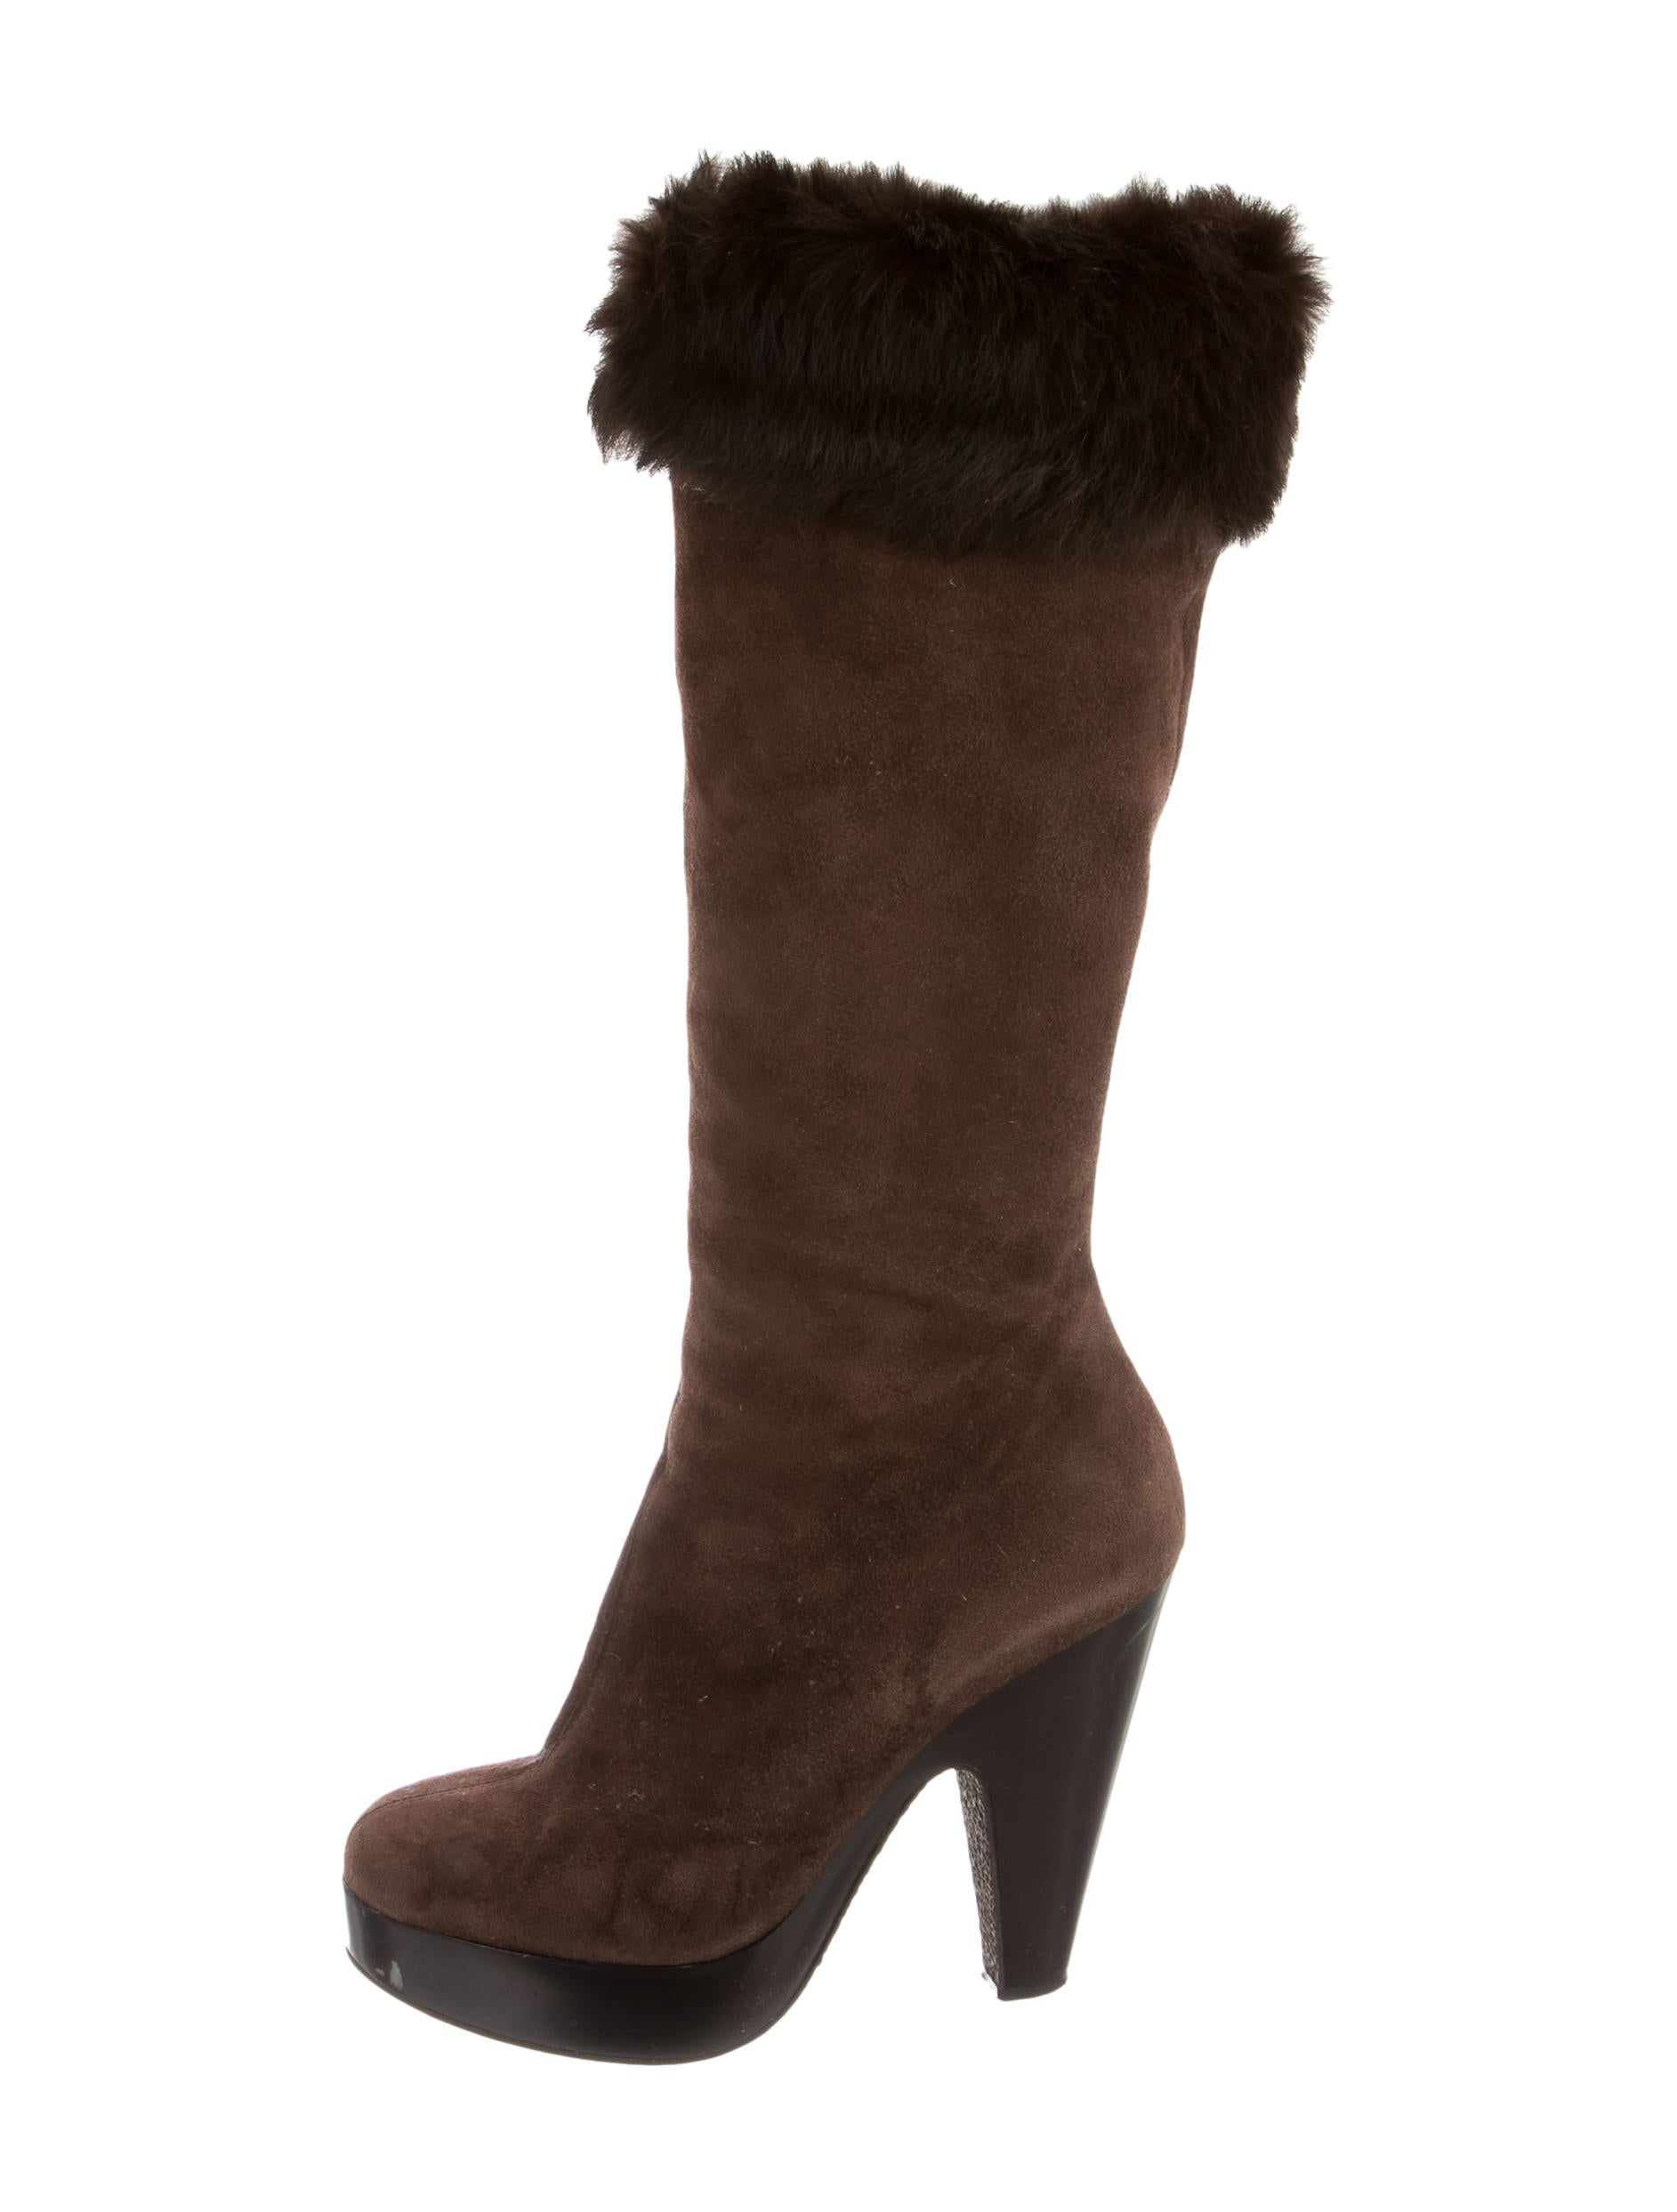 giuseppe zanotti fur trimmed suede boots shoes